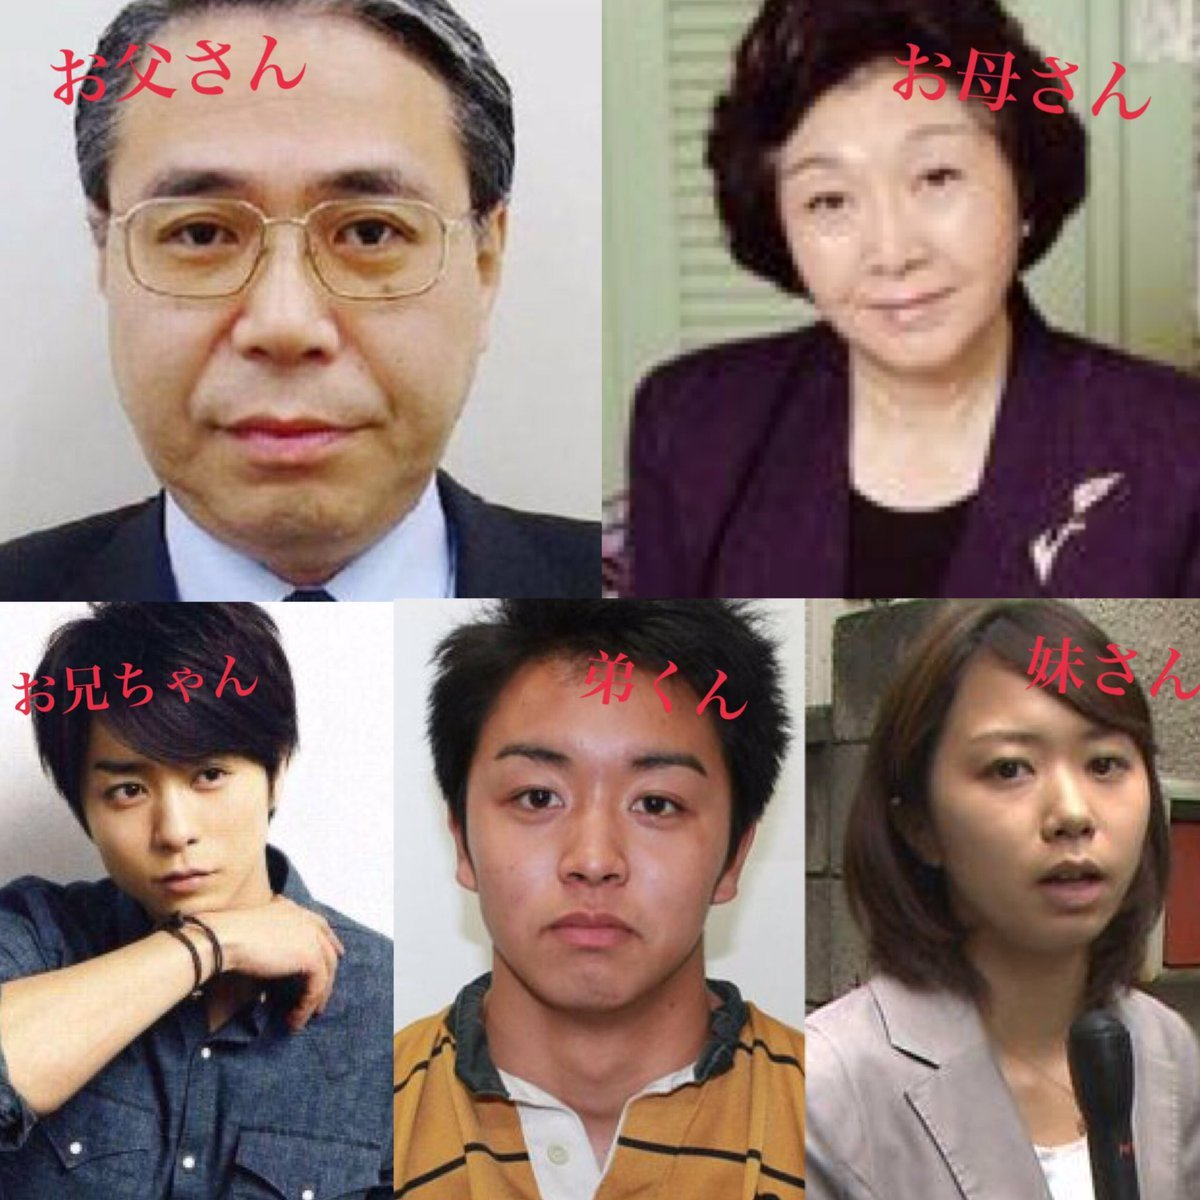 sakurai sho family famous as an elite family my younger brother is CnlBAqLUsAA5cLQ - エリート一家として有名な櫻井翔一家!弟はどんな人?